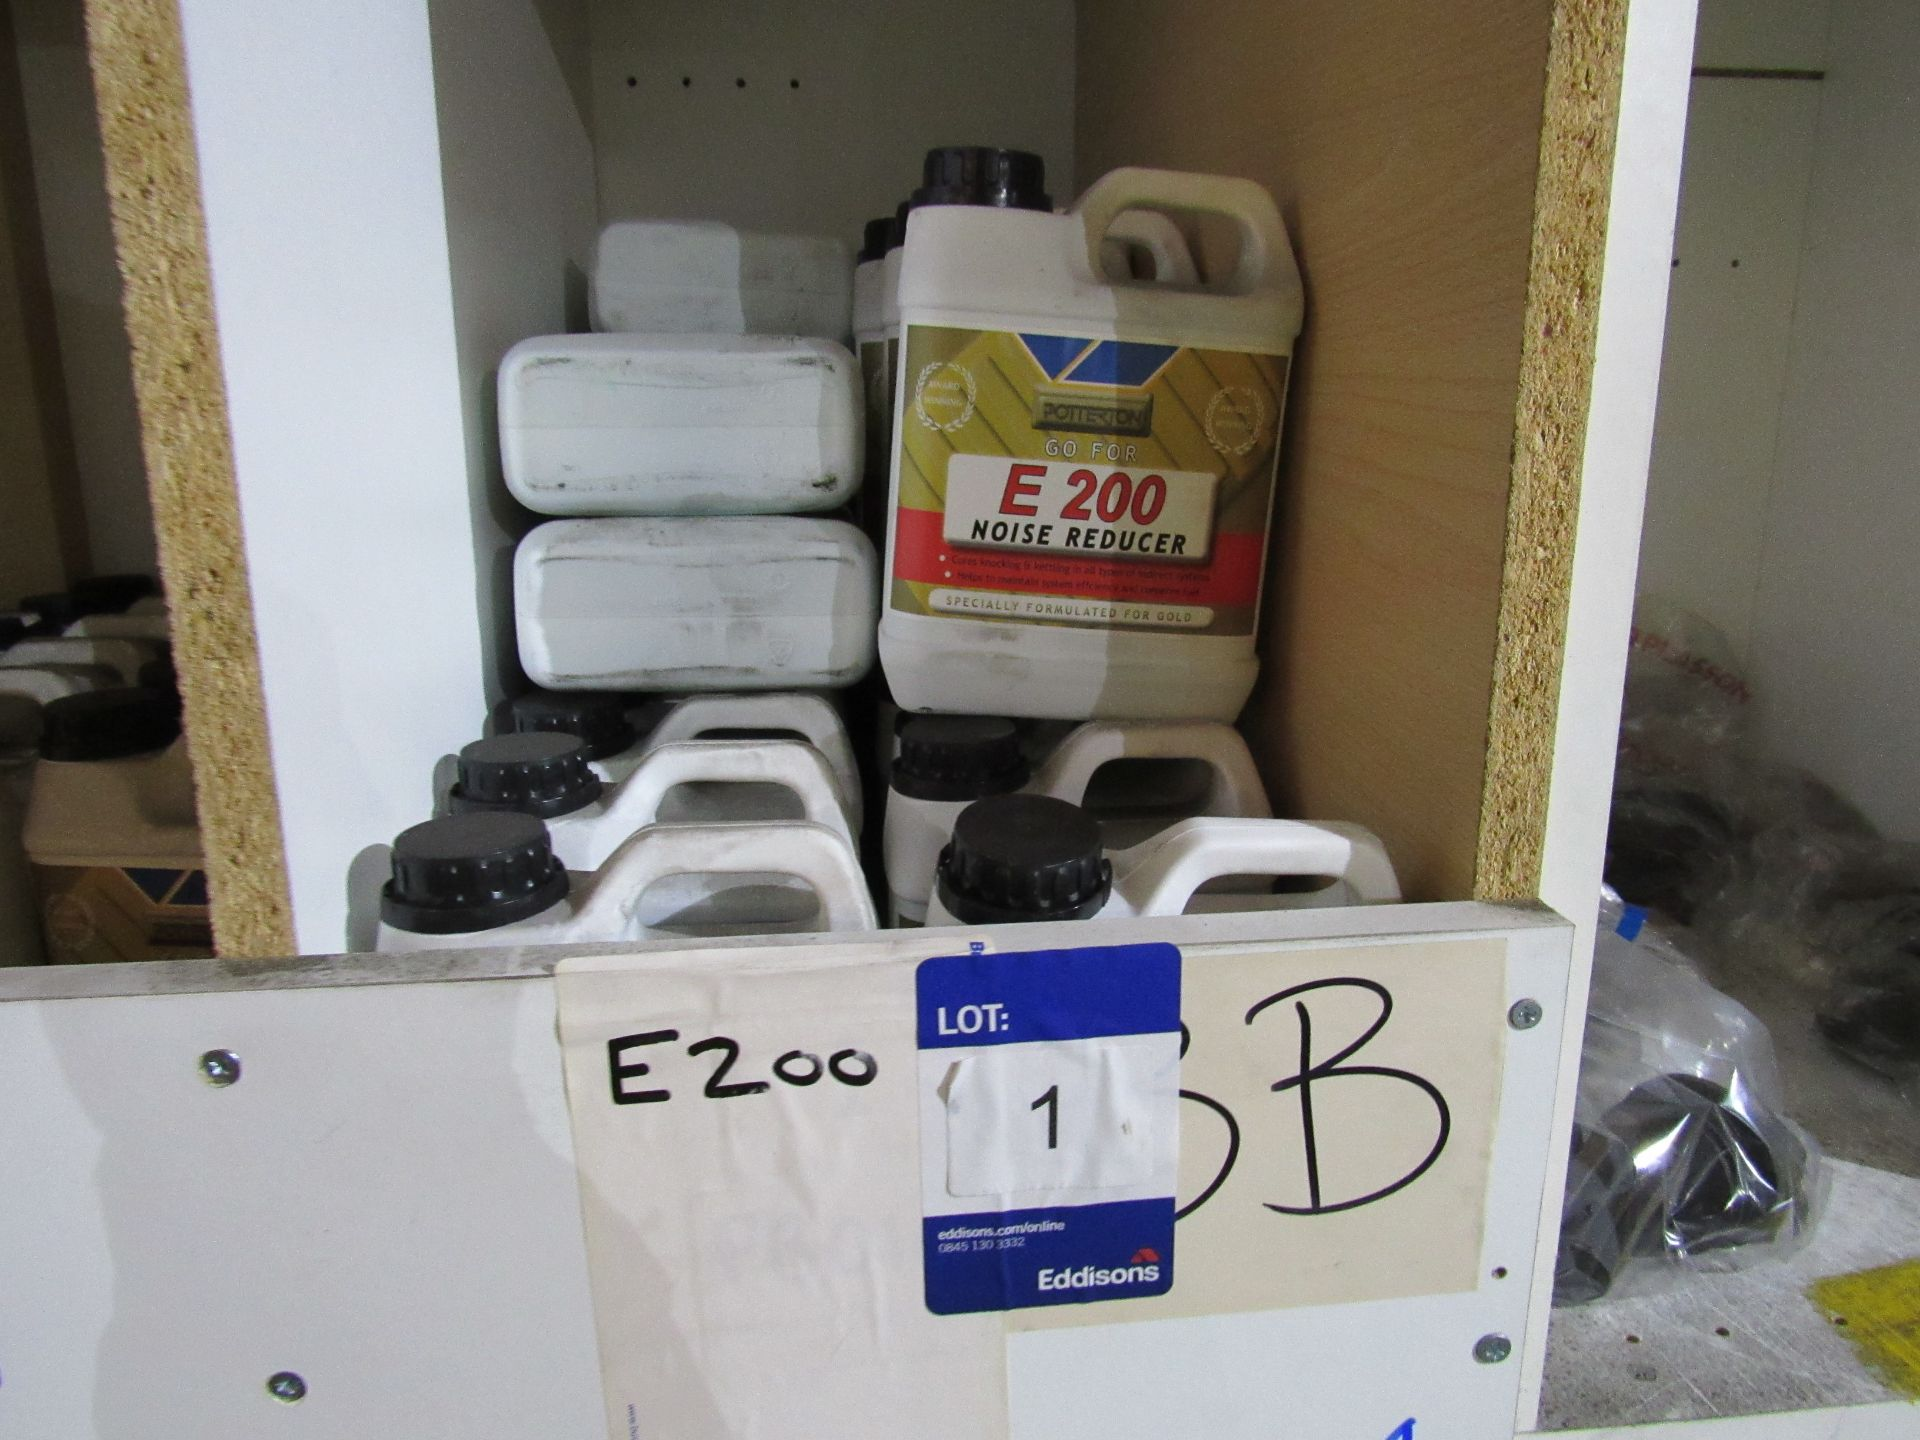 Lot 1 - 134 E200 Central Heating Noise Reducer - 1 Litre